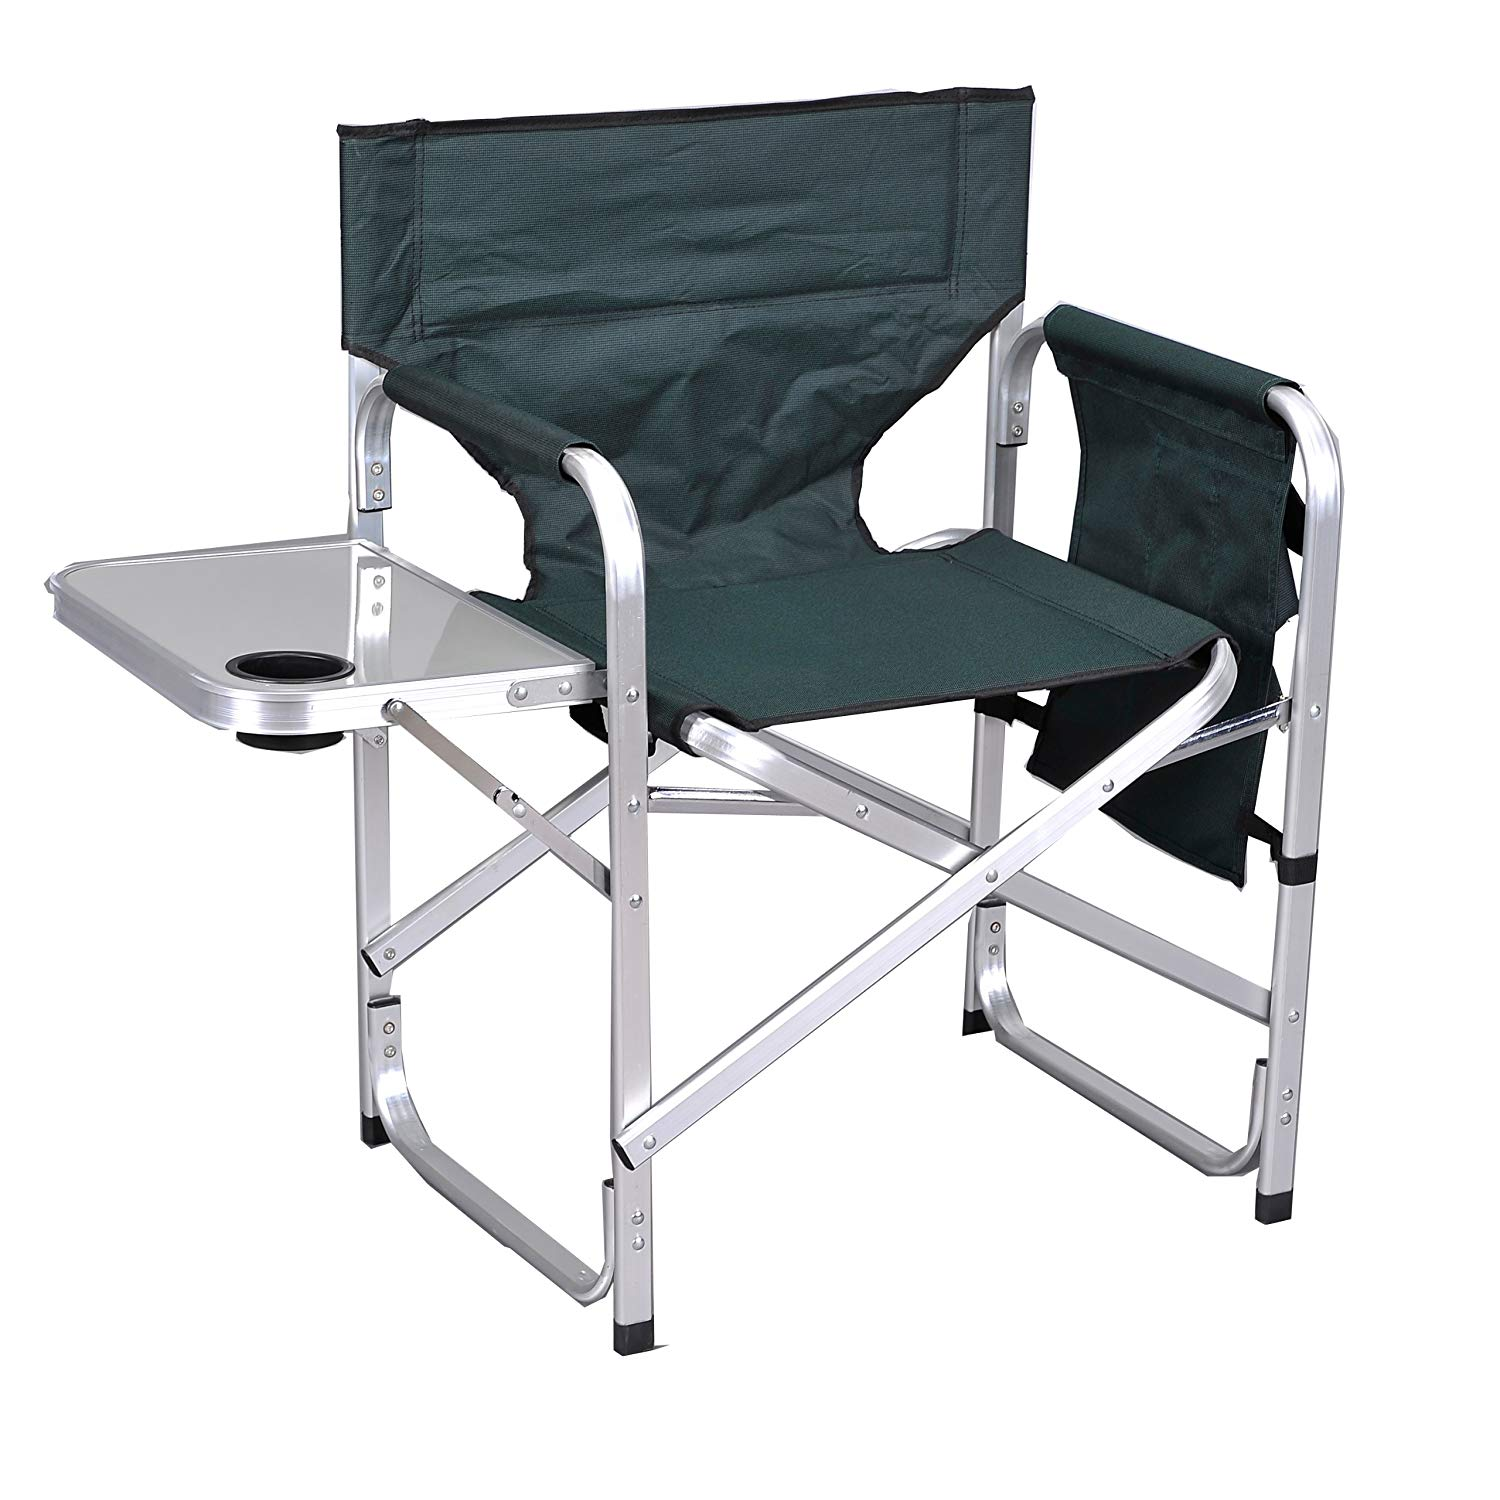 Coleman Comfortsmart Chair Best Camping Chair For Bad Back Review Buying Guide 2019 The